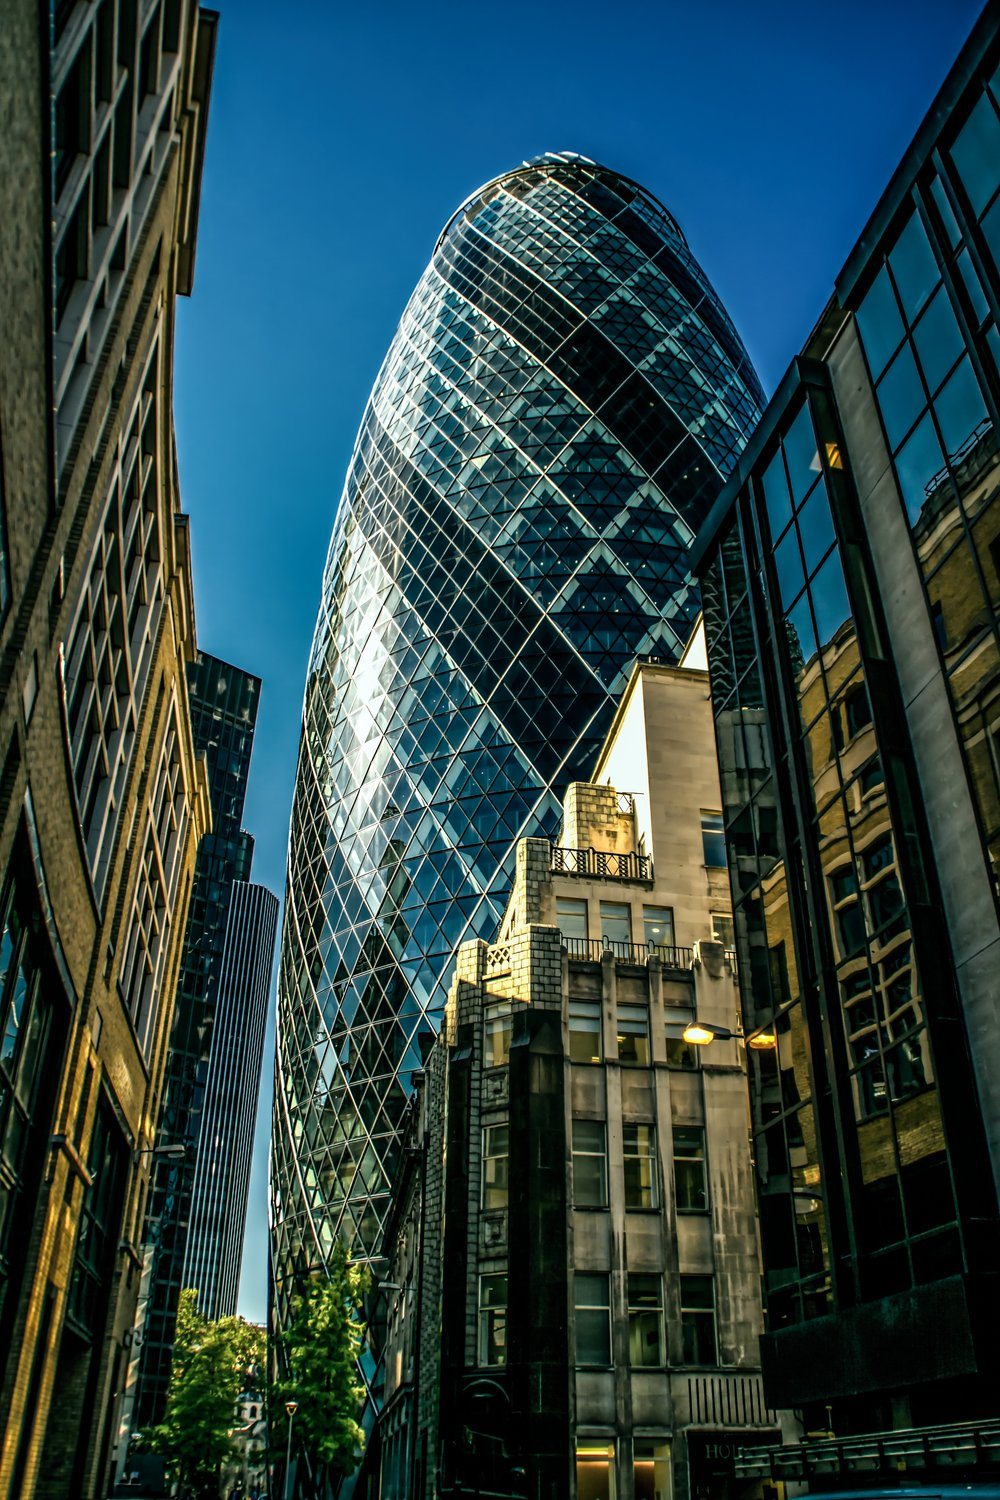 30-st-mary-axe-architecture-buildings-259219.jpg